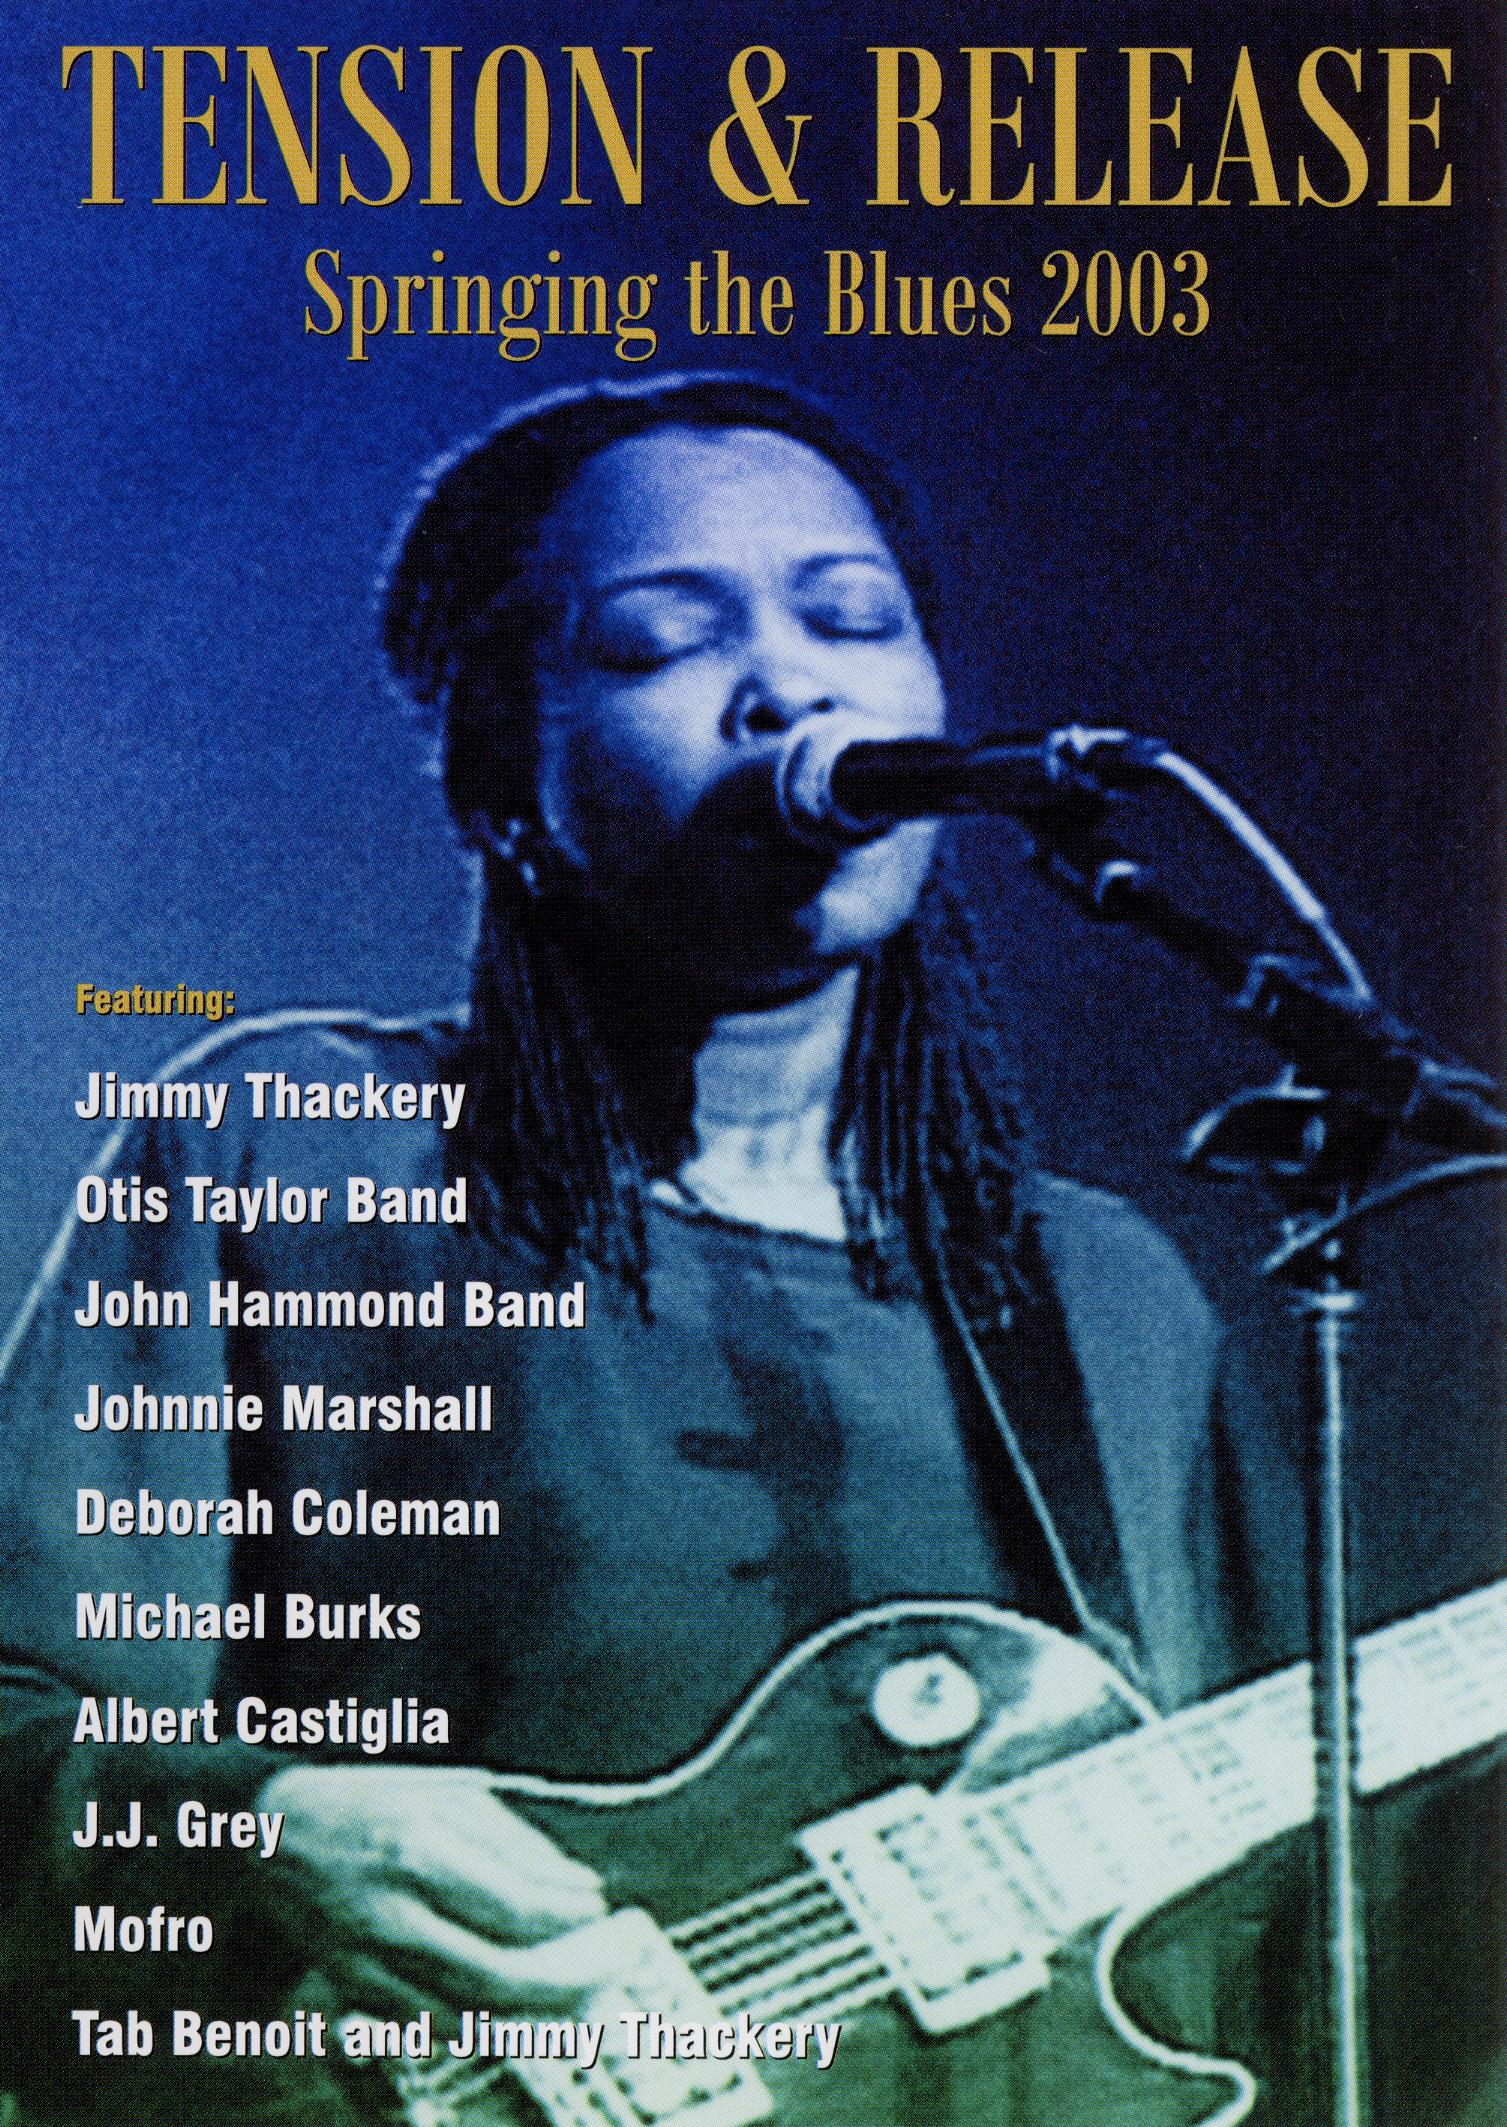 Tension & Release: Springing the Blues 2003